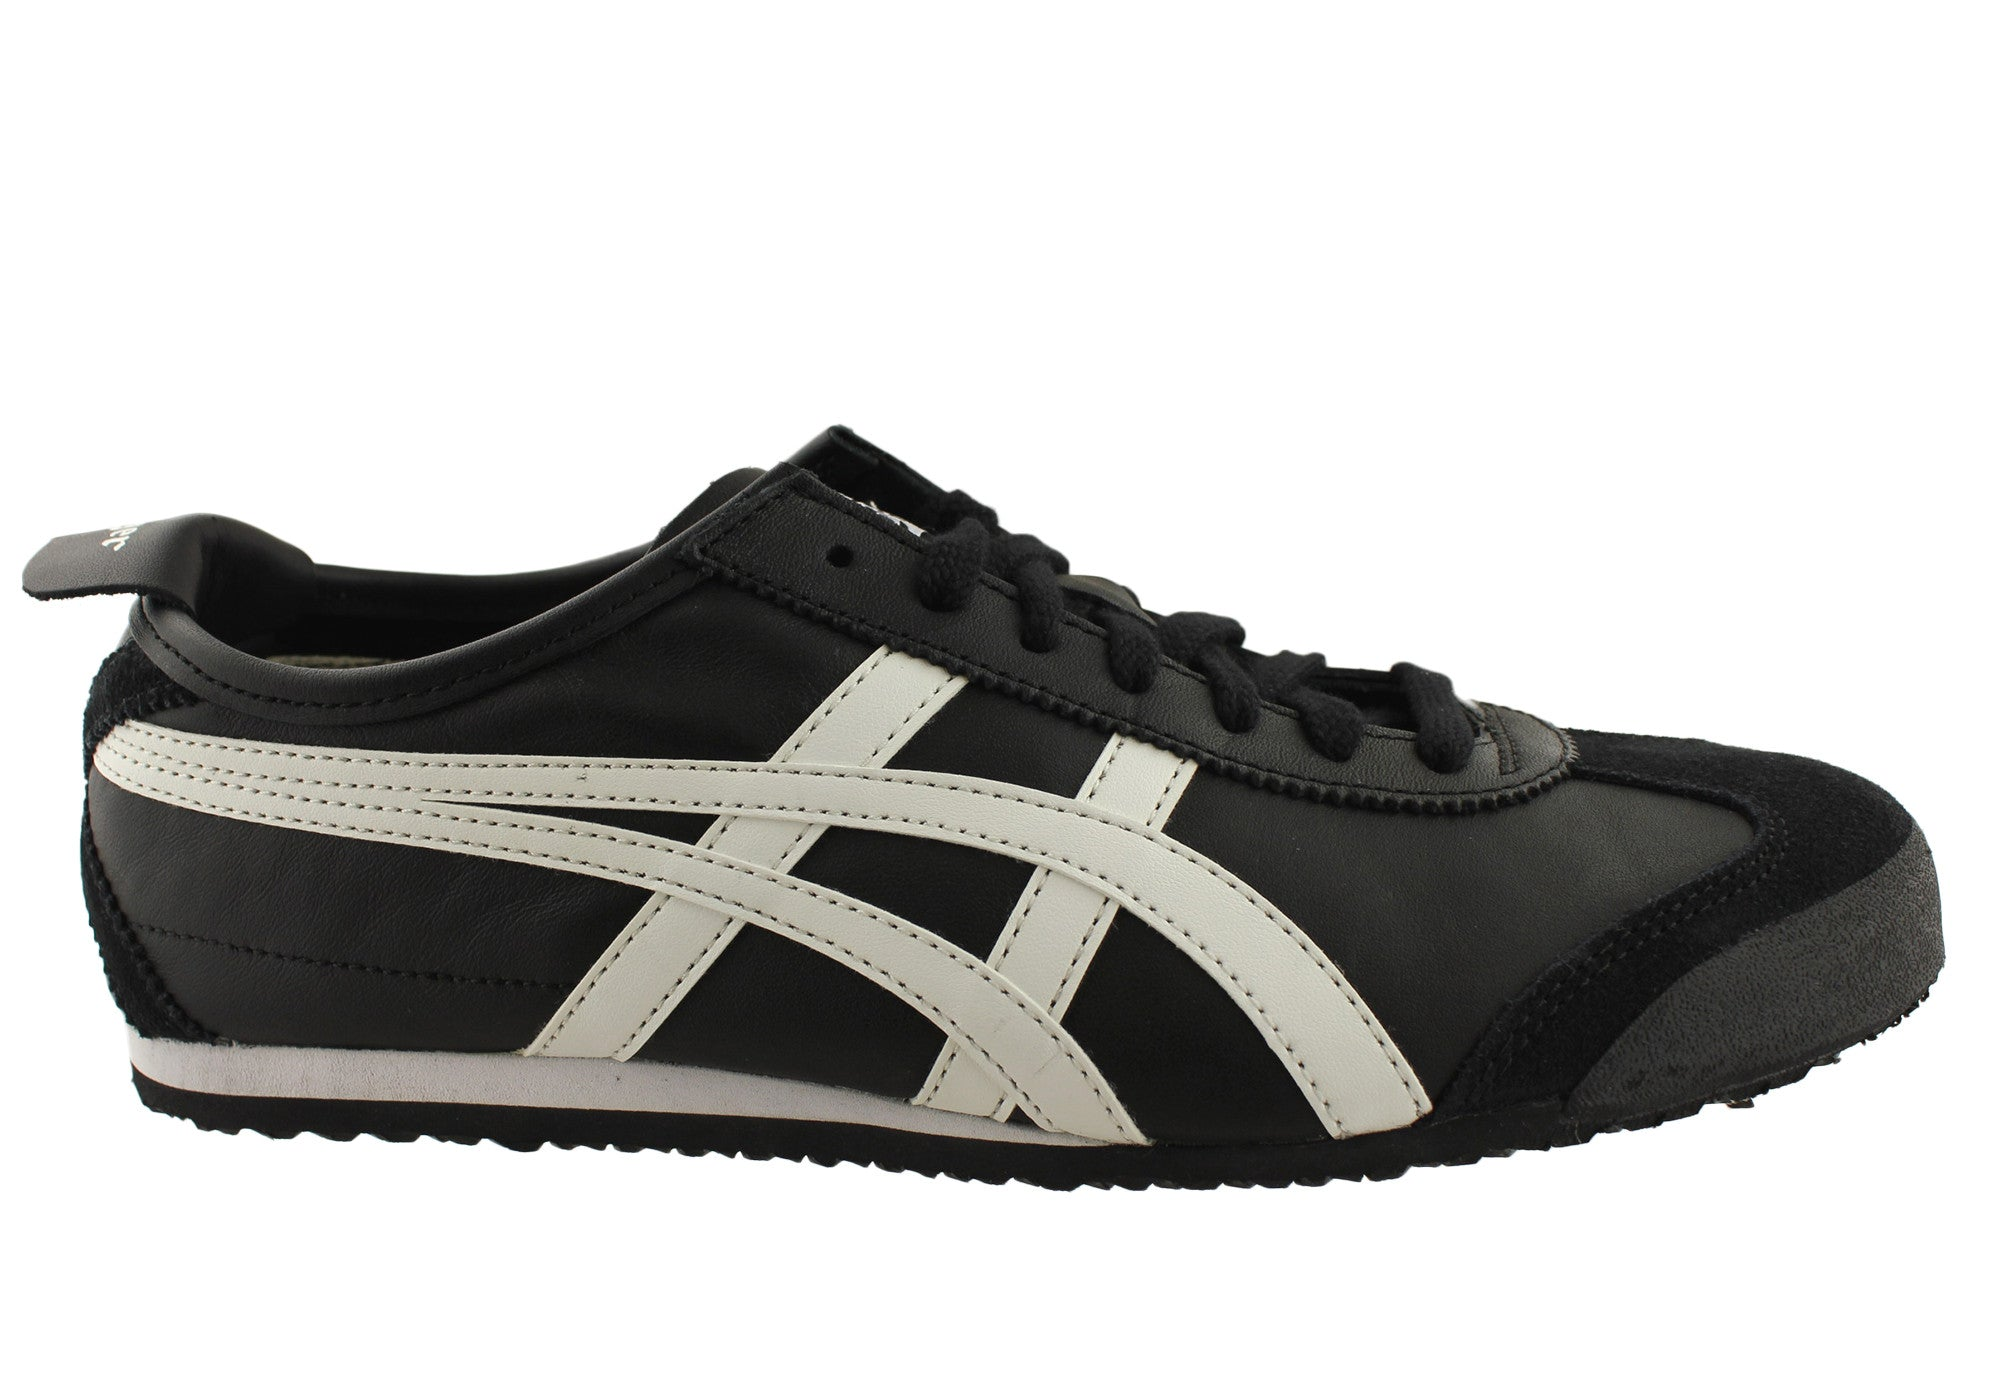 on sale 09998 5ffe9 Asics Onitsuka Tiger Mexico 66 Mens Leather Lace Up Casual Shoes | Brand  House Direct